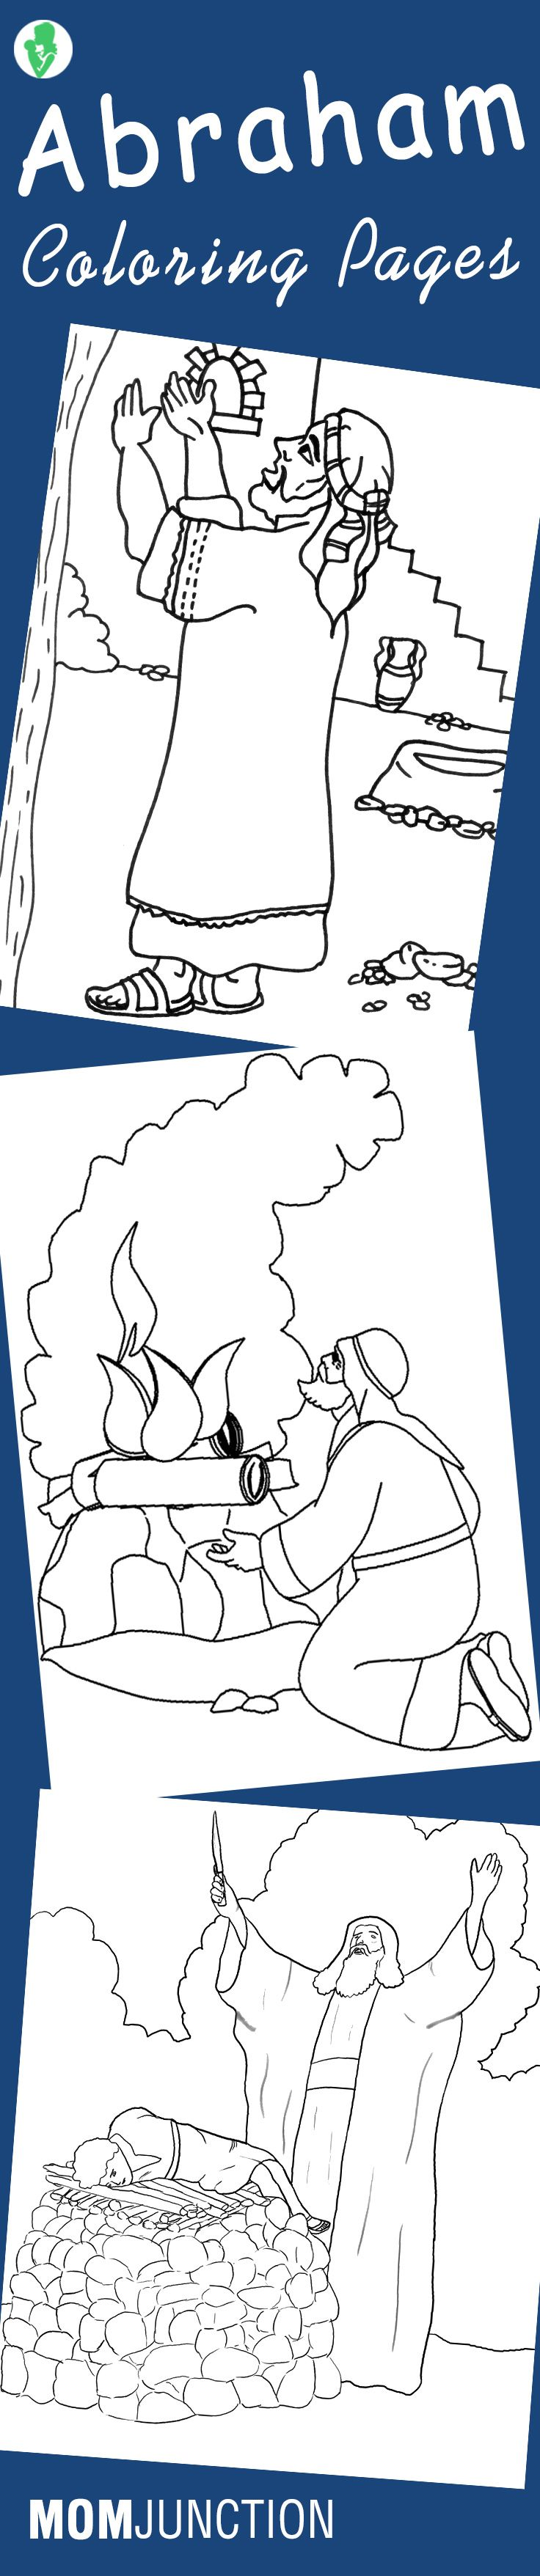 Top 10 Abraham Coloring Pages For Your Little Ones